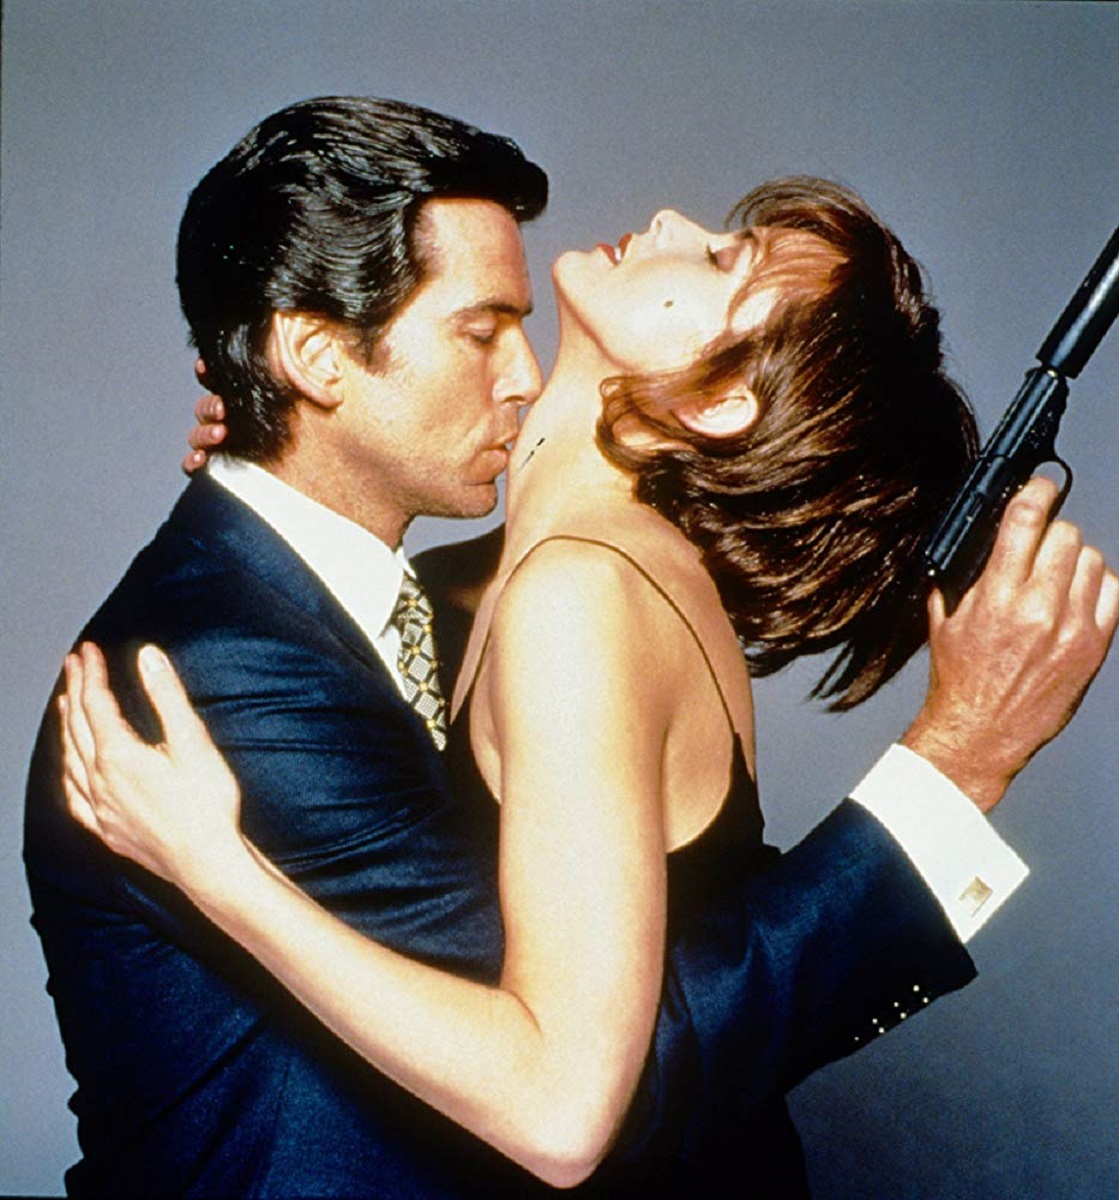 Pierce Brosnan, Izabella Scorupco in Goldeneye (1995)